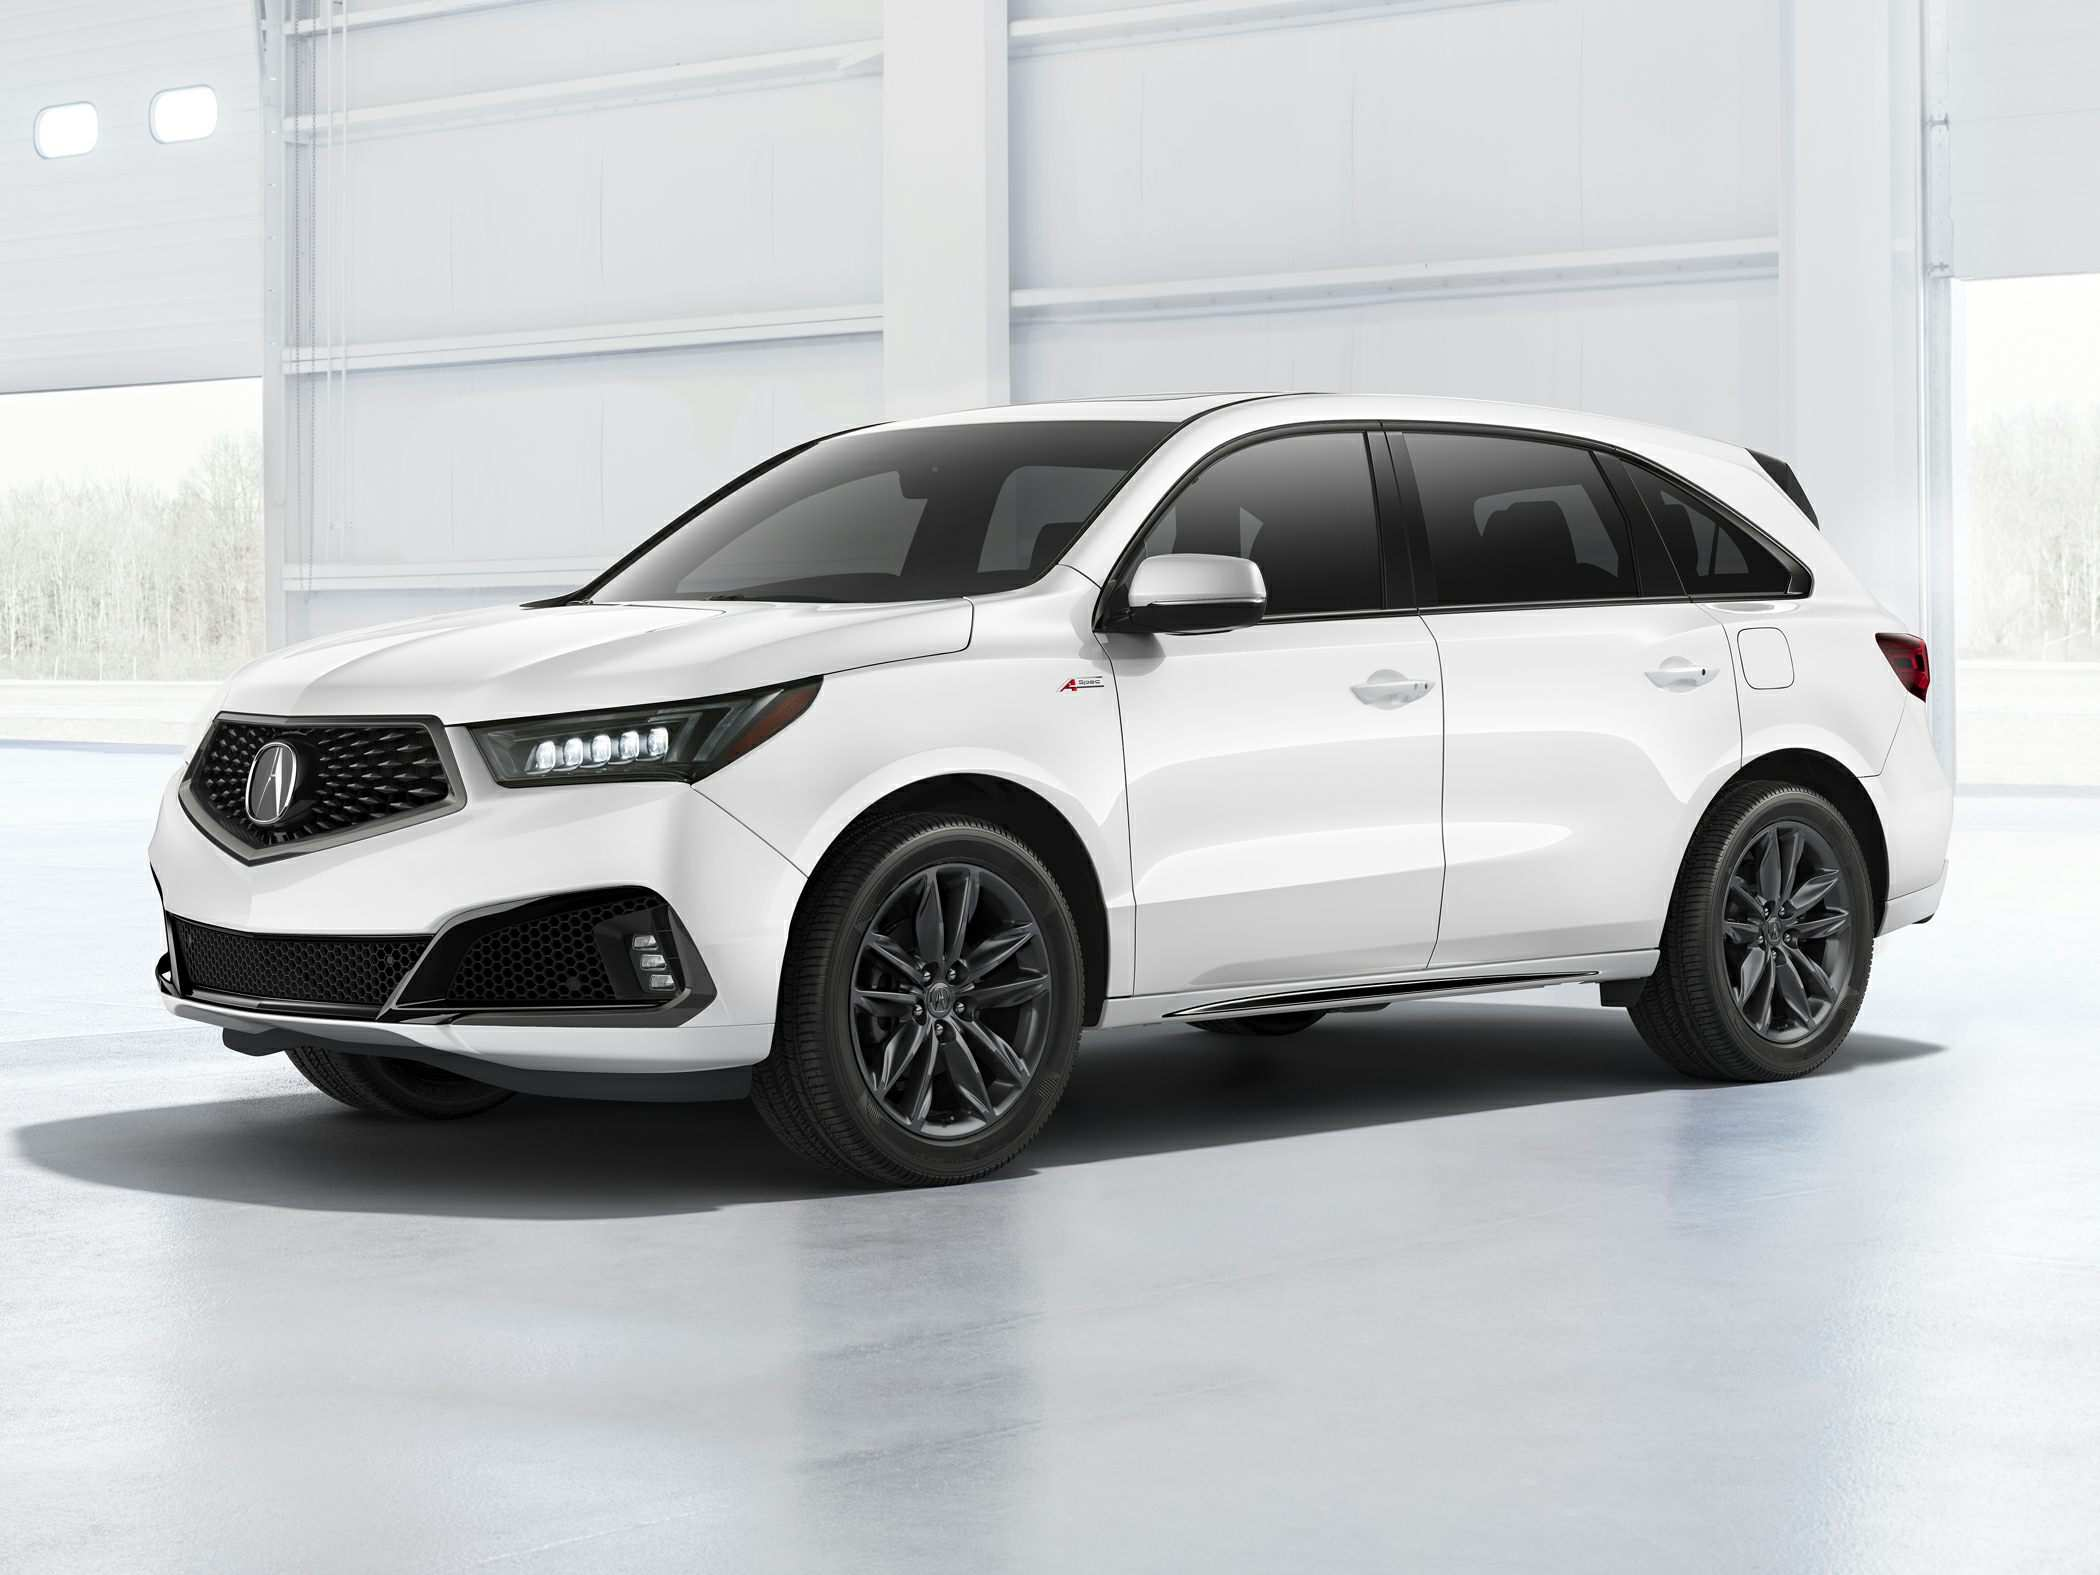 57 All New Acura Car 2020 Specs and Review for Acura Car 2020